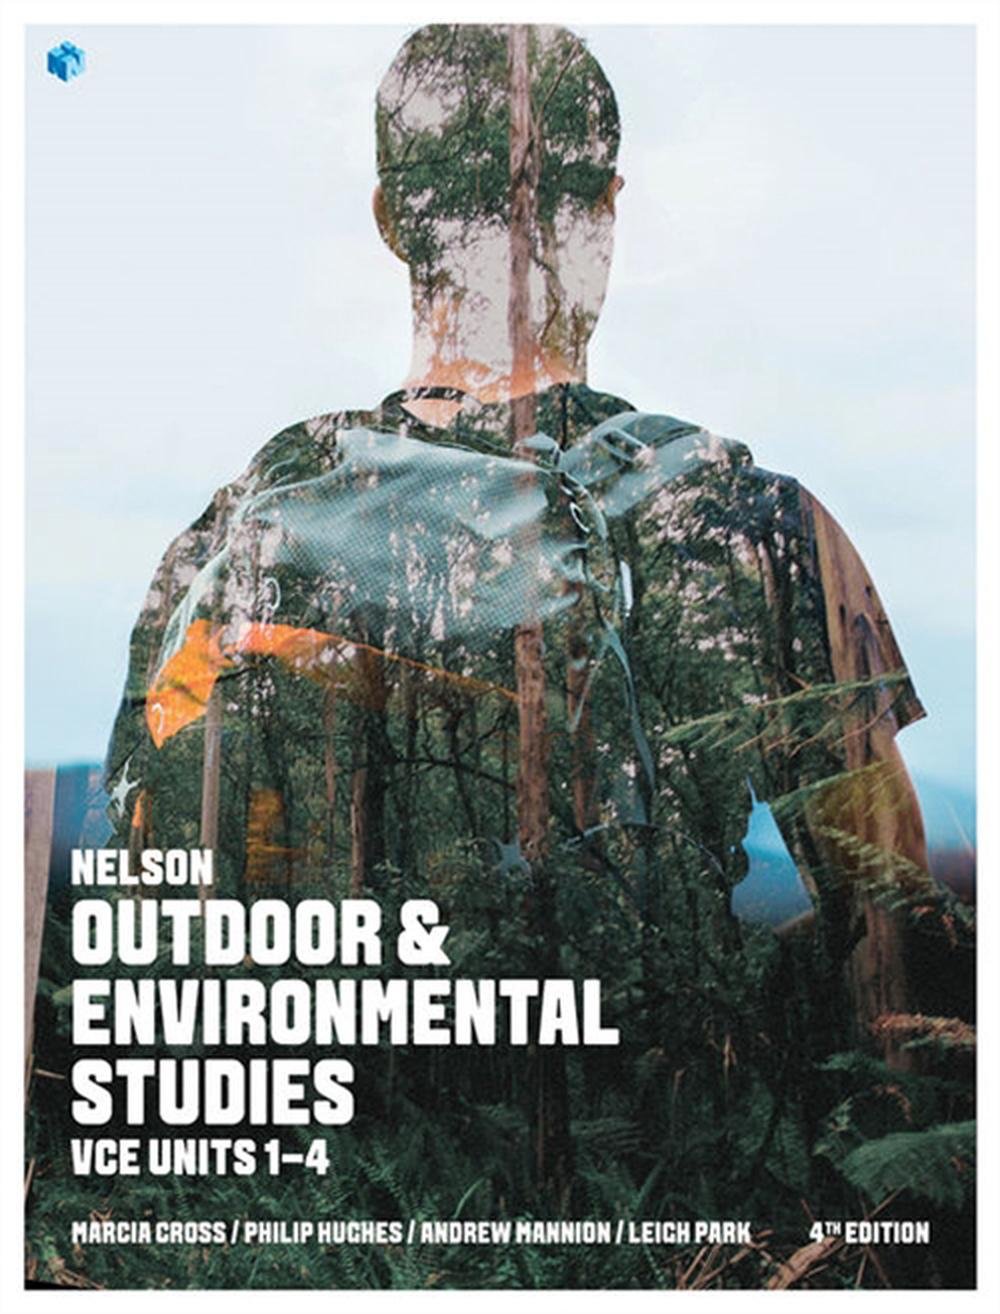 Nelson Outdoor & Environmental Studies VCE Units 1-4 by Andrew Mannion,Marcia Cross,Phillip Hughes,Leigh Park, ISBN: 9780170401777